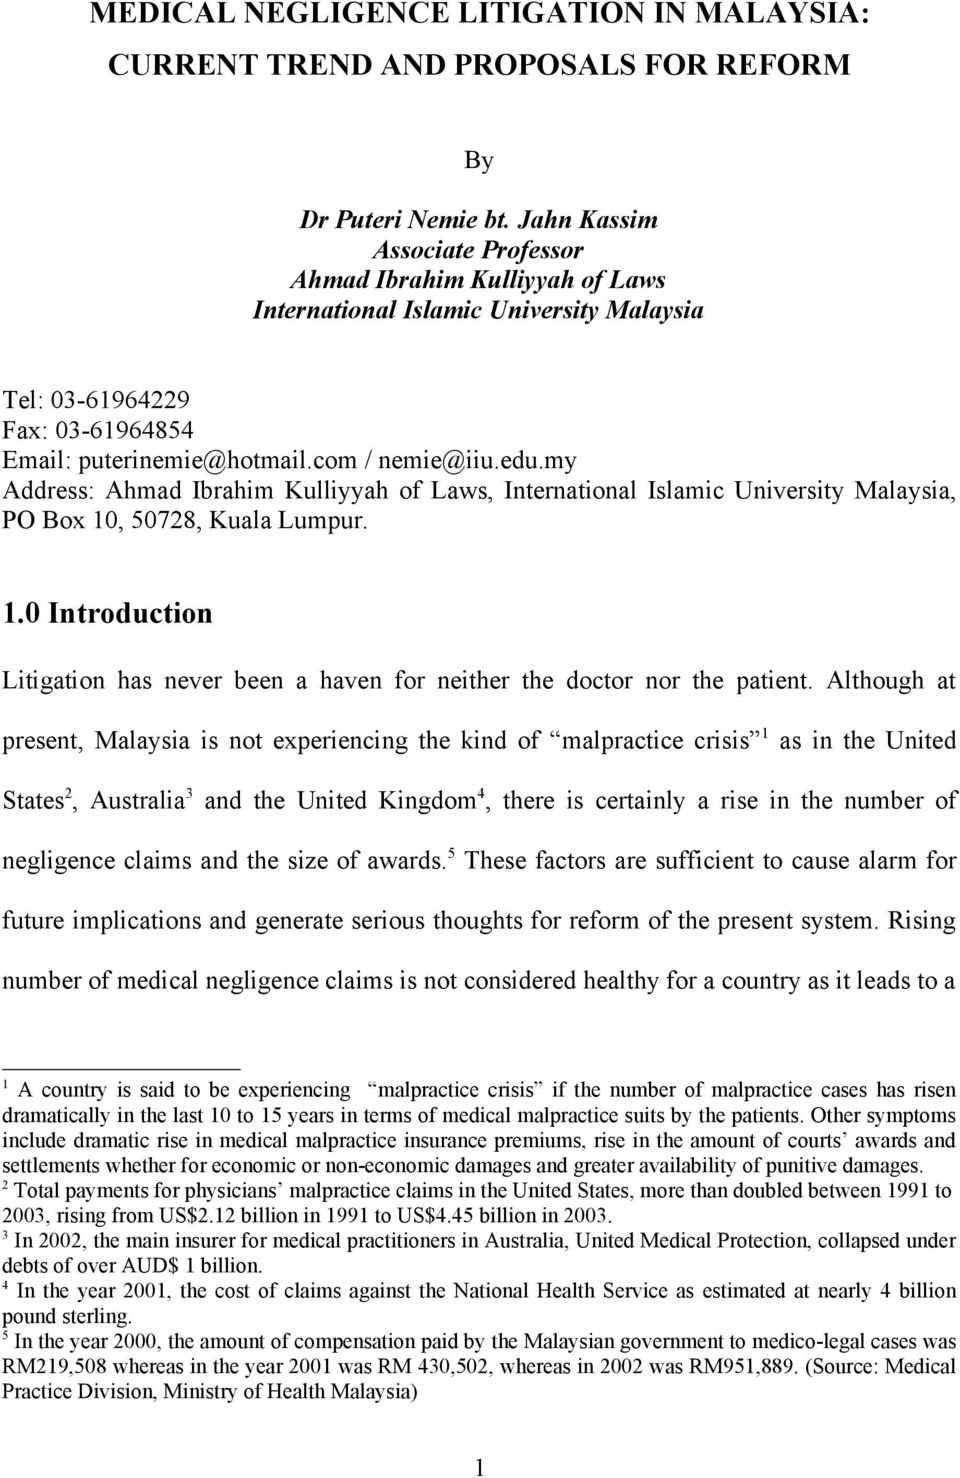 my Address: Ahmad Ibrahim Kulliyyah of Laws, International Islamic University Malaysia, PO Box 10, 50728, Kuala Lumpur. 1.0 Introduction Litigation has never been a haven for neither the doctor nor the patient.